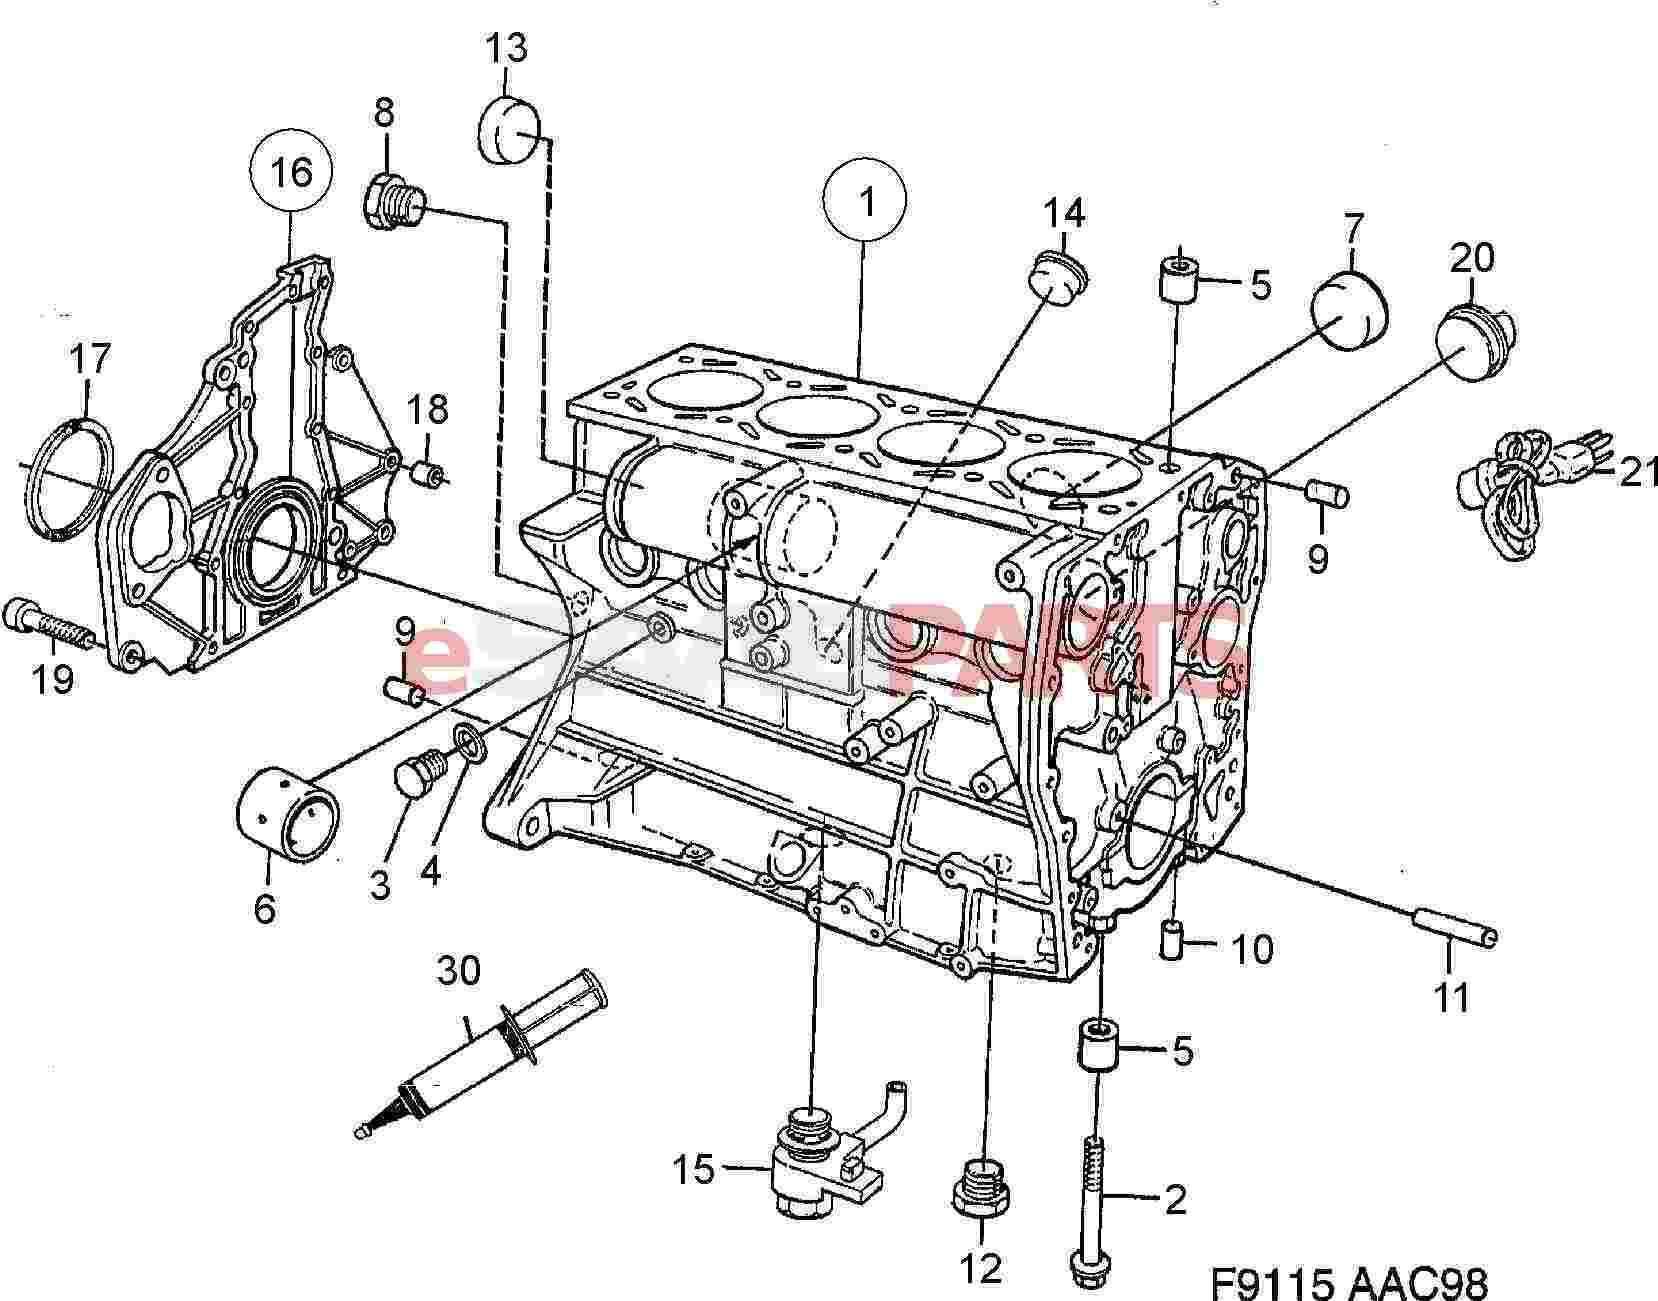 92150435 saab gasket genuine saab parts from esaabparts com rh esaabparts com 1993 Saab 900 Engine Diagram Saab 900 Engine Diagram